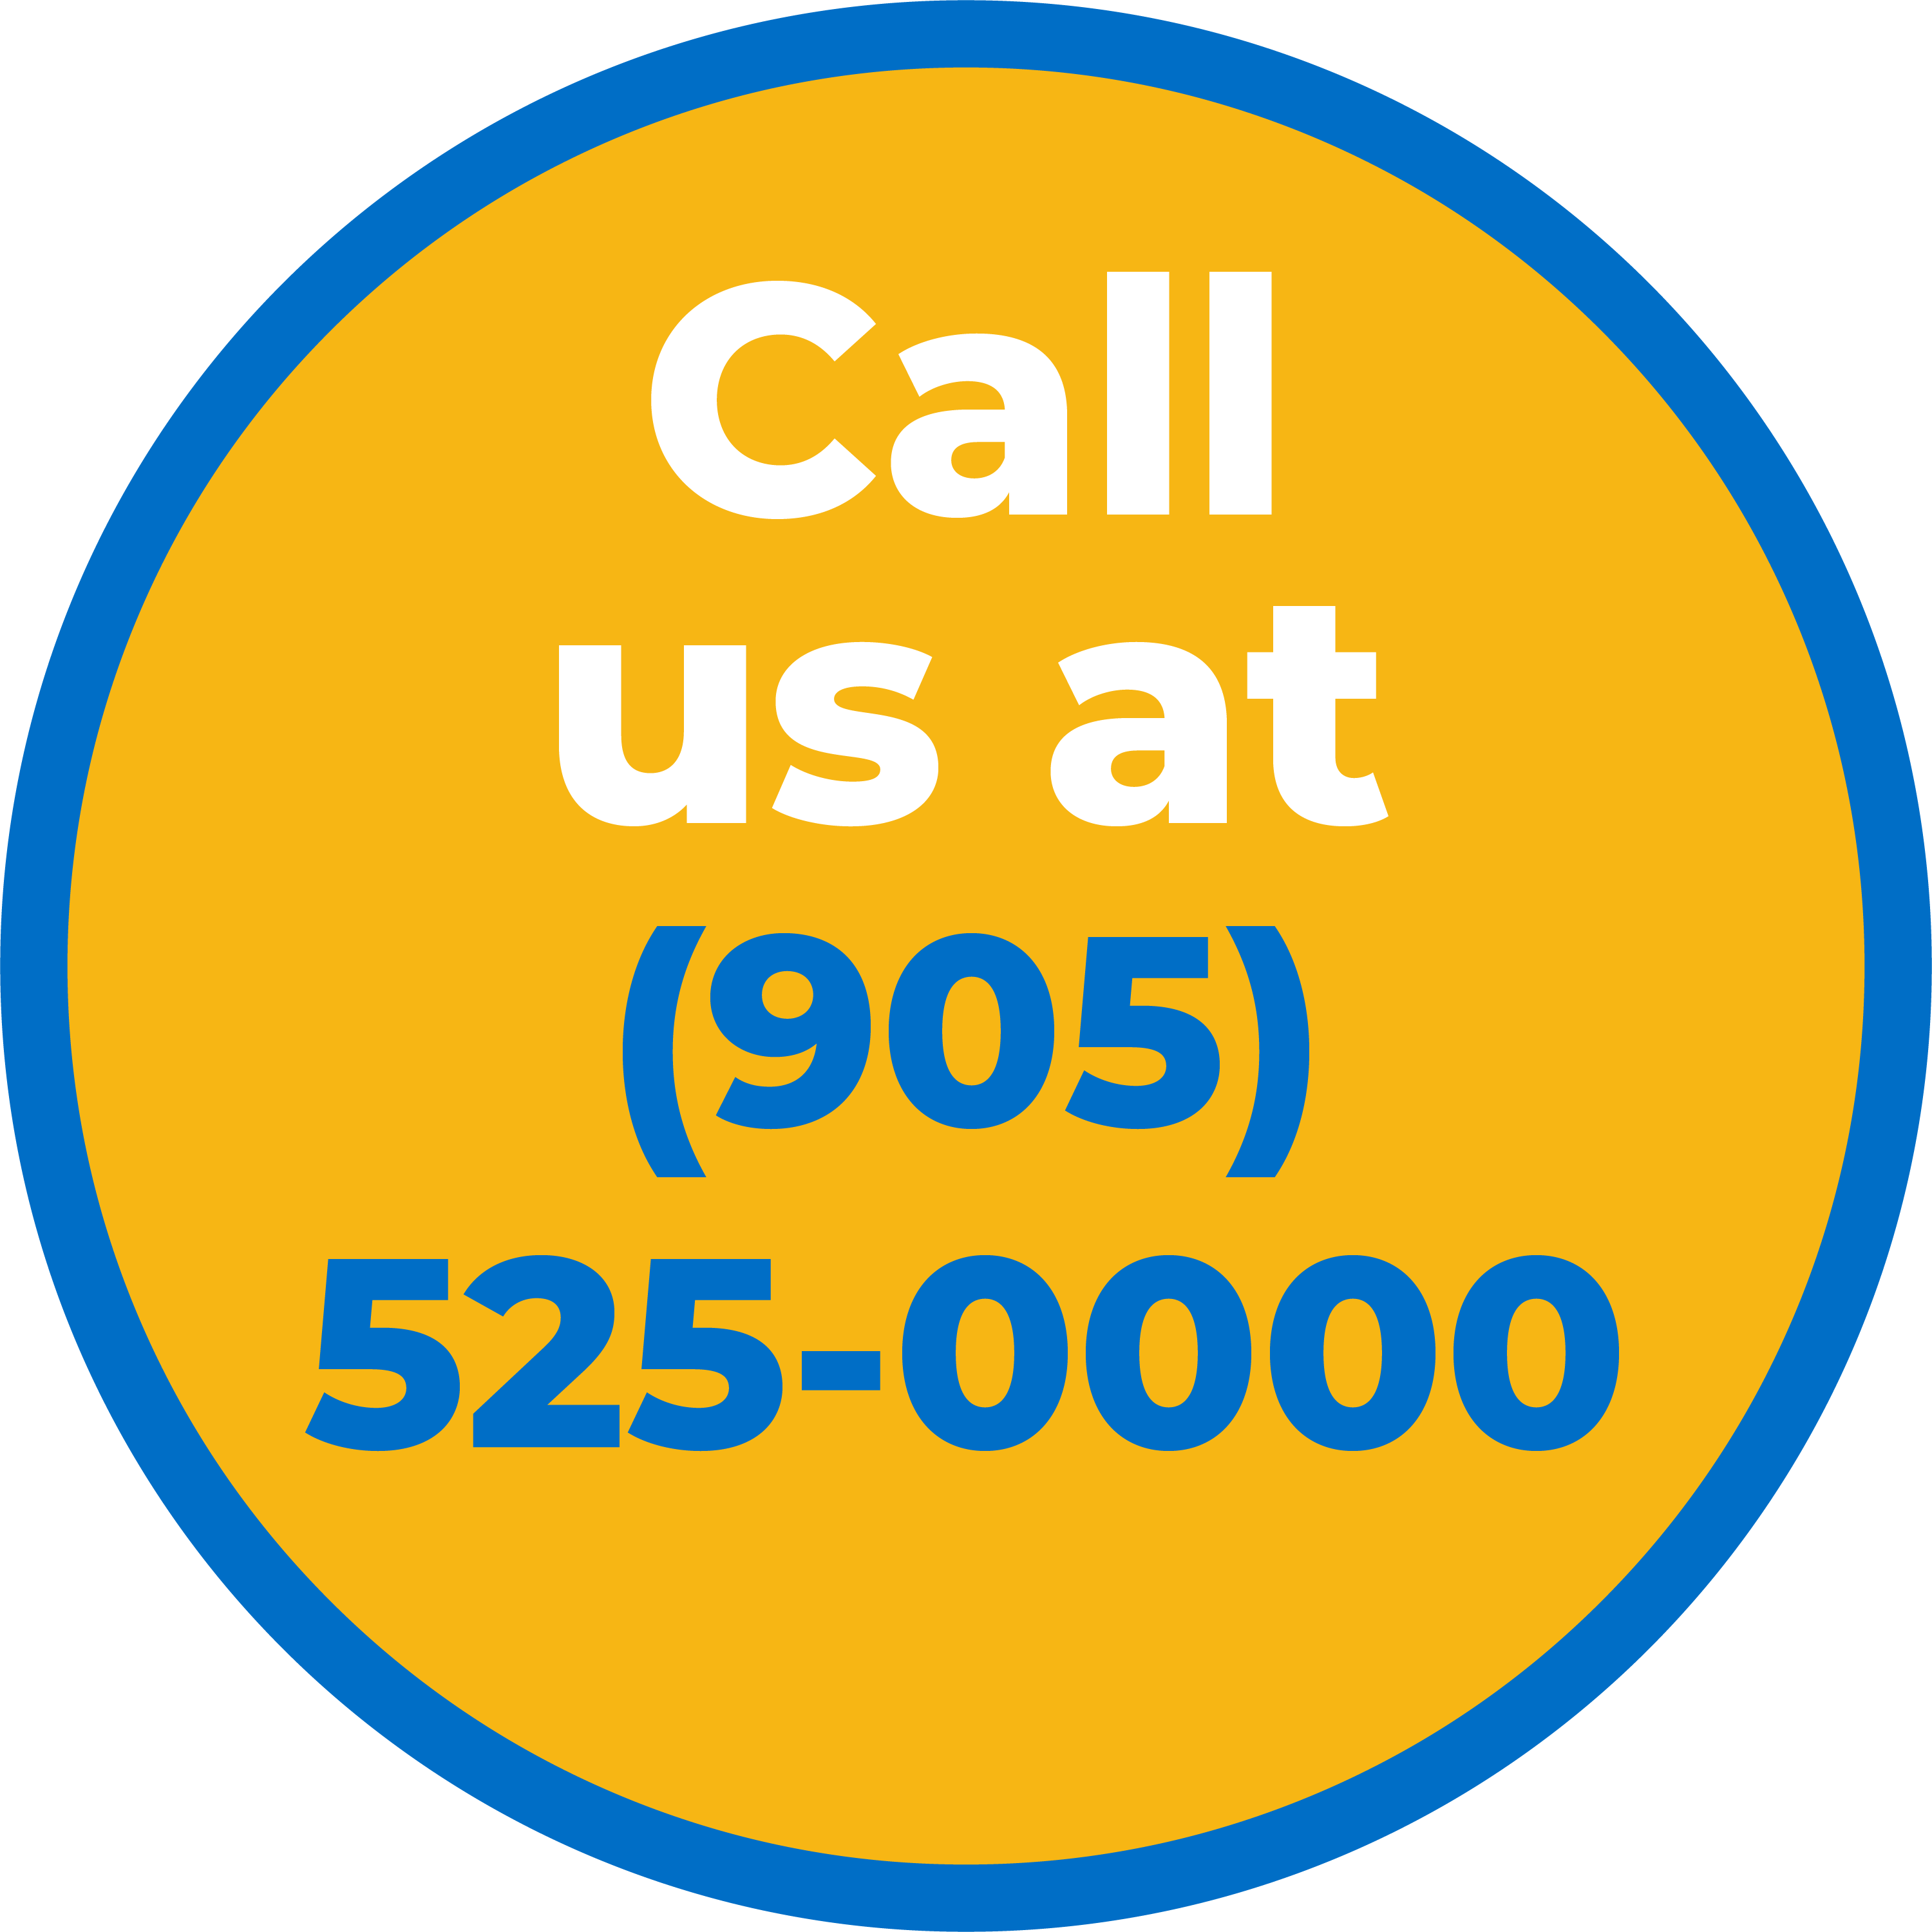 'Call us at 905 525 0000' personal taxi transport